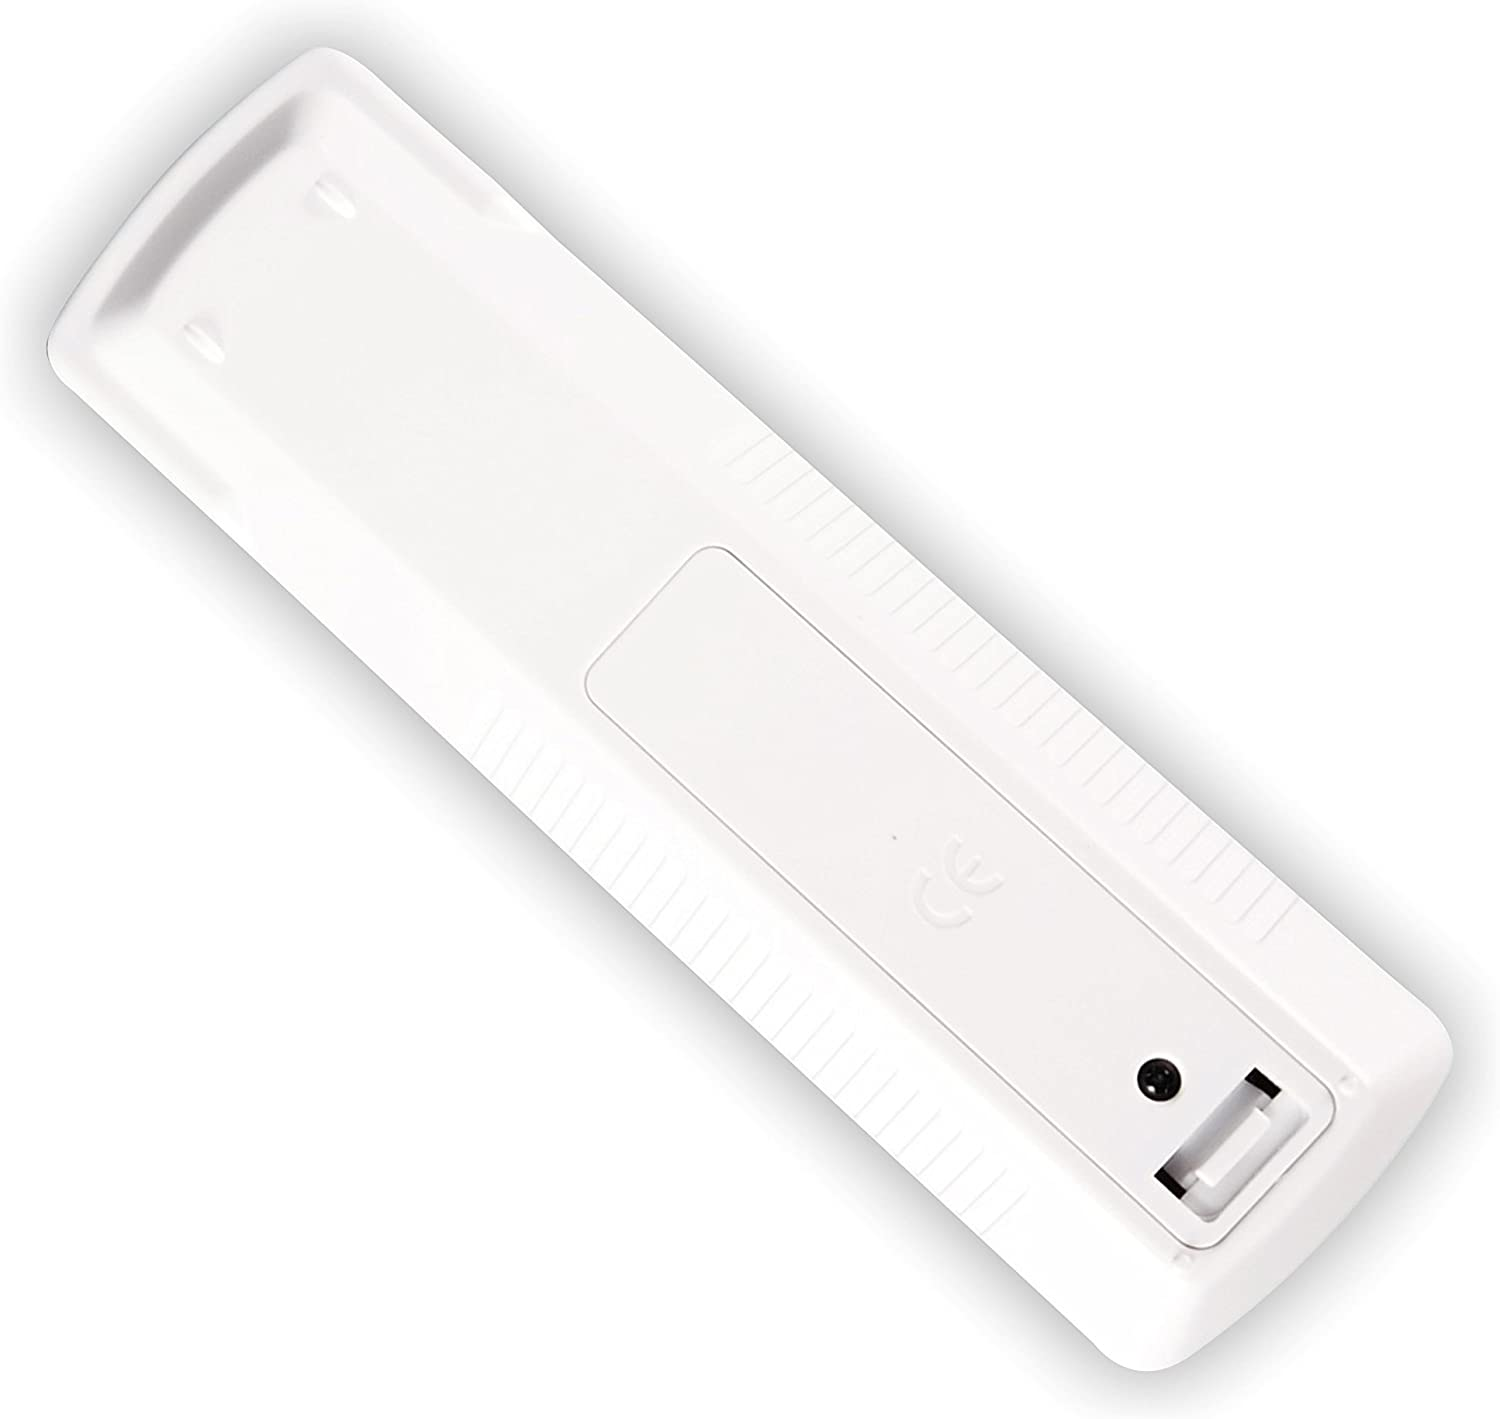 TeKswamp Video Projector Remote Control (White) for Canon RS-RC06 Replacement